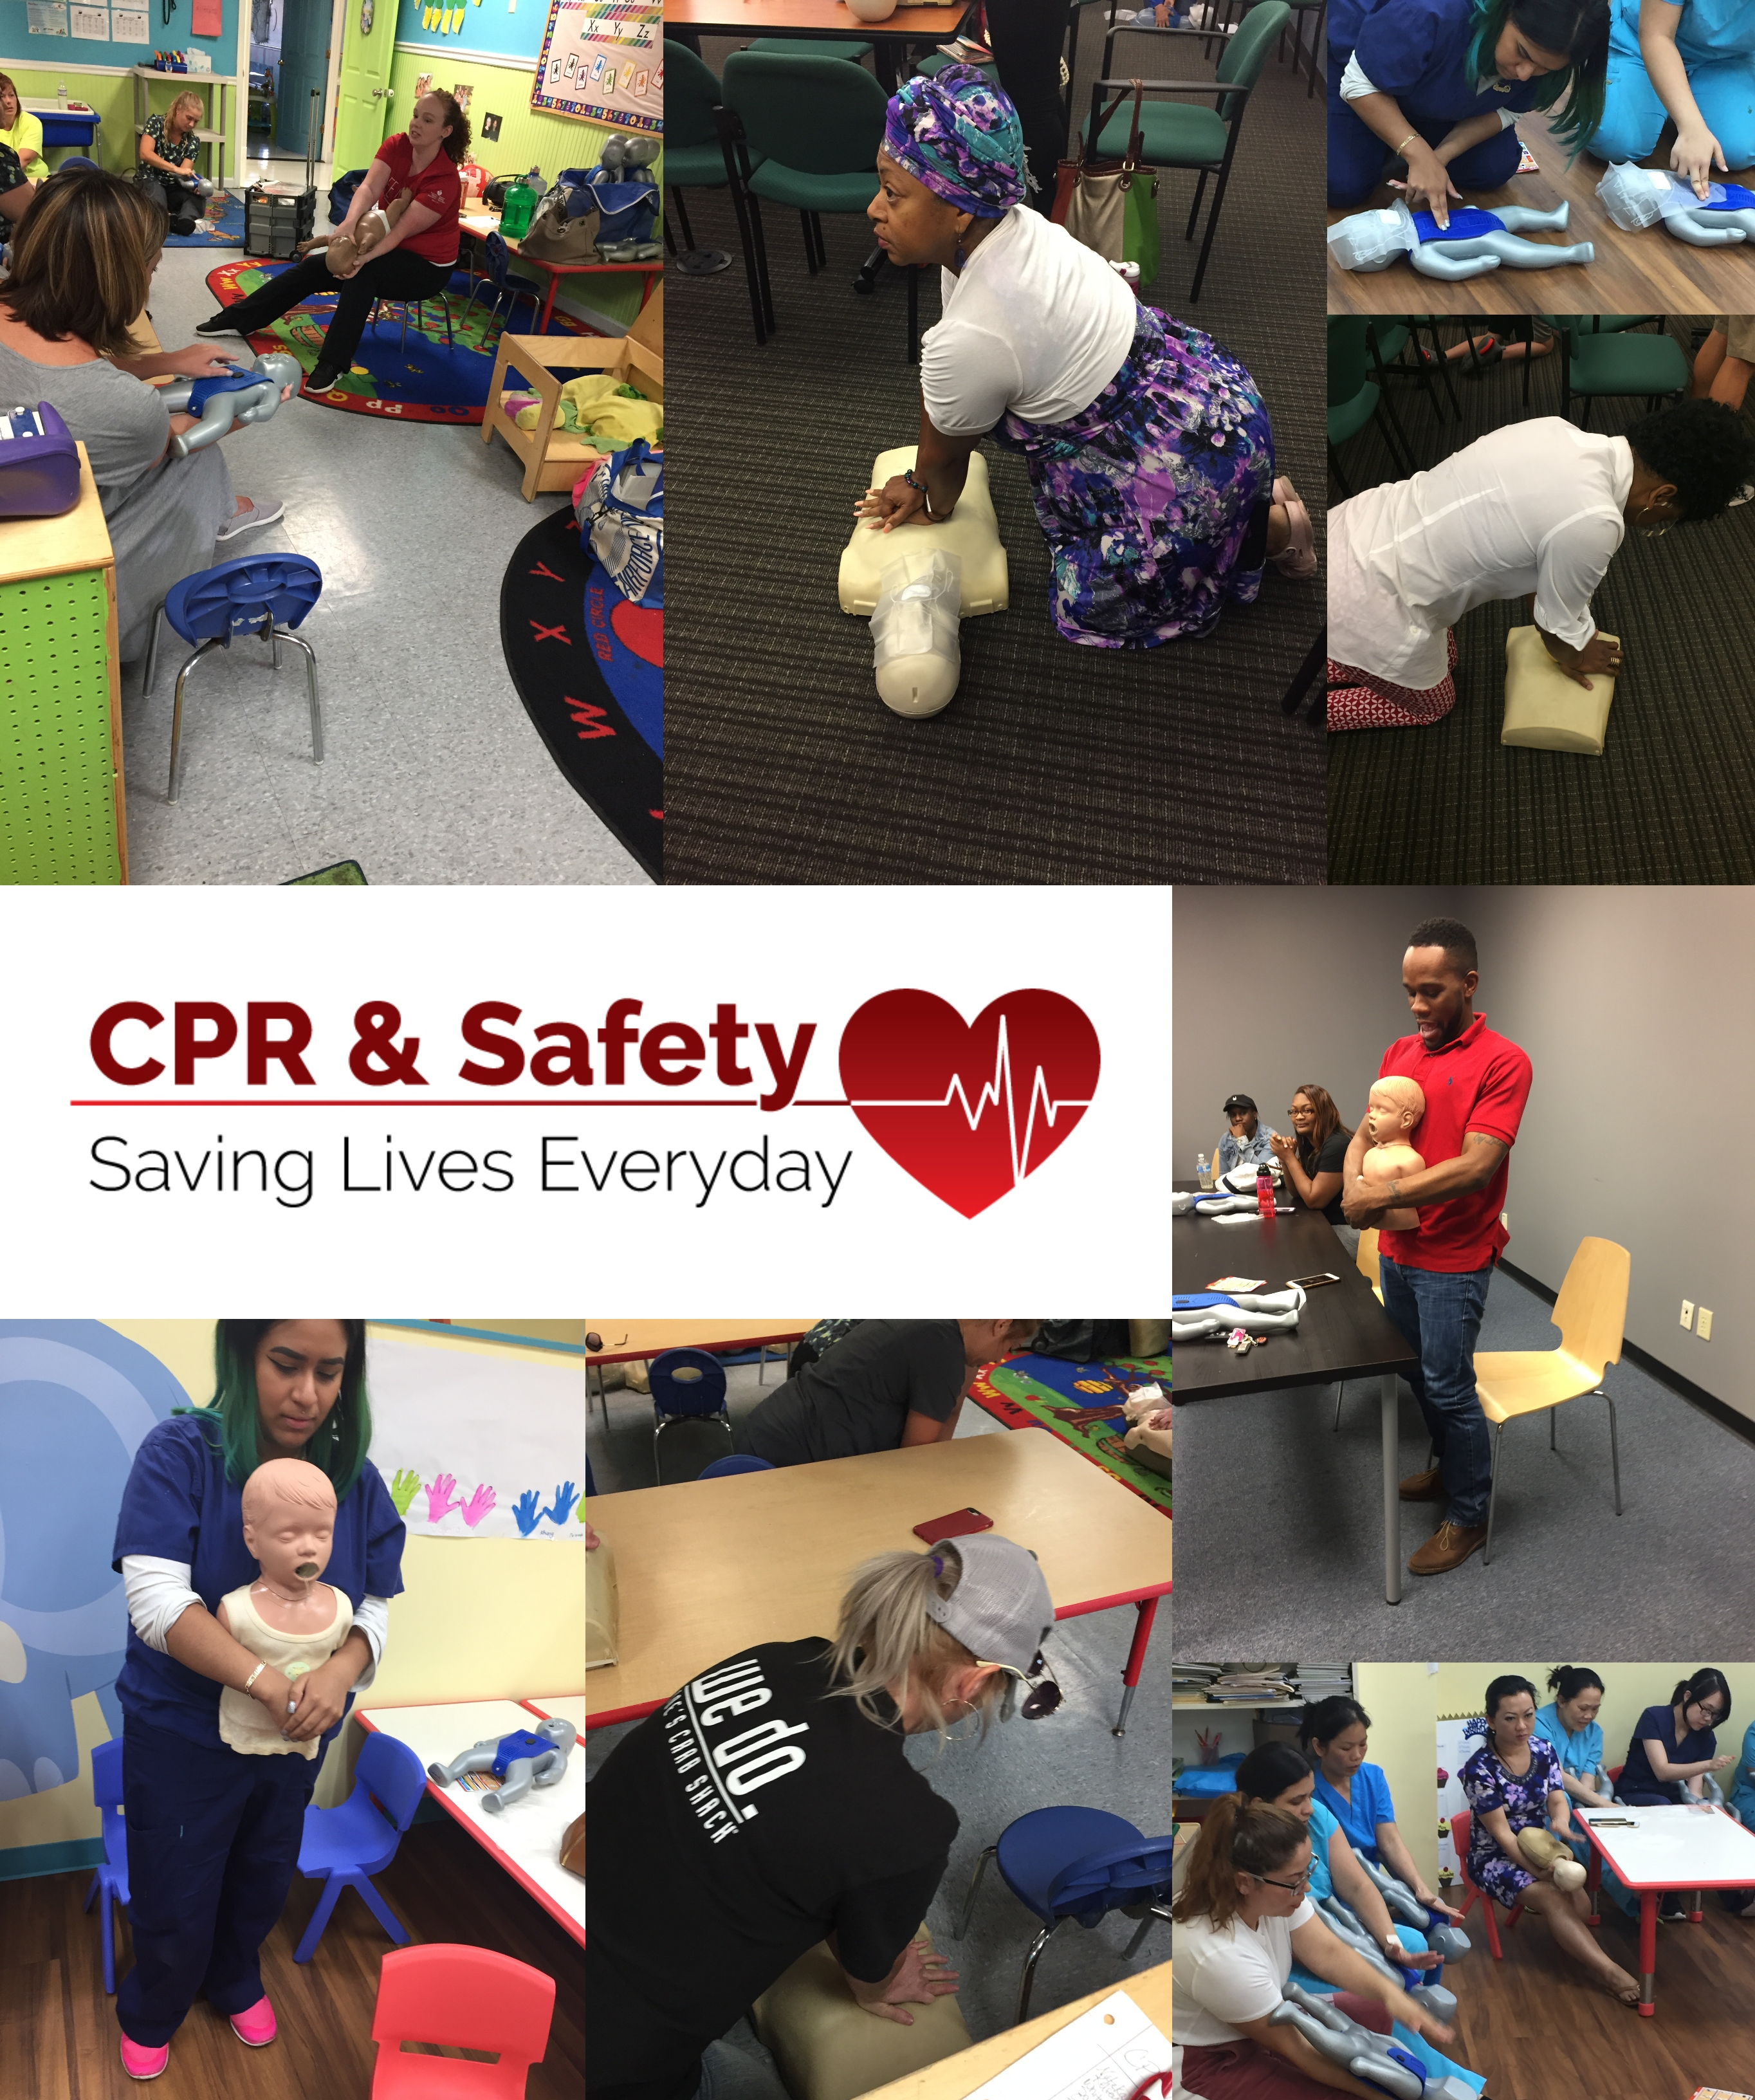 CPR and Safety image 3